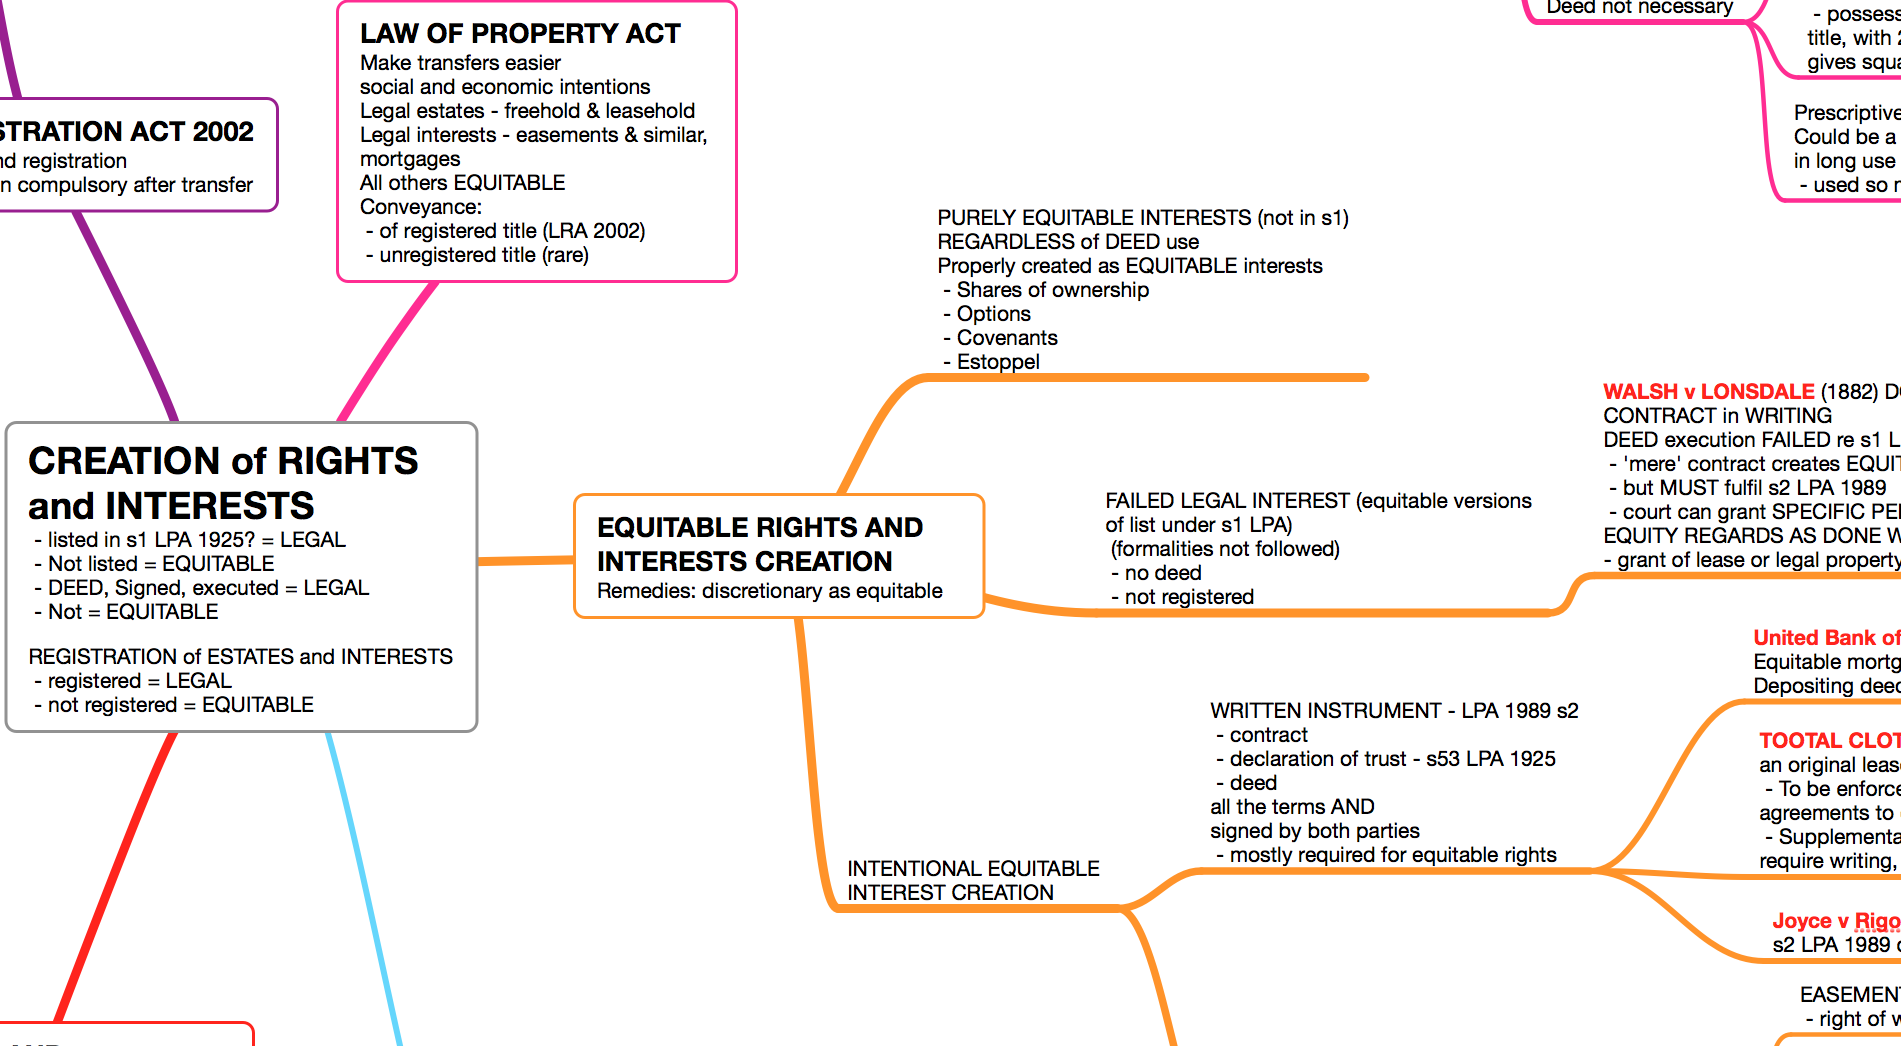 Definition of Land and The Creation of Property Rights and Interests